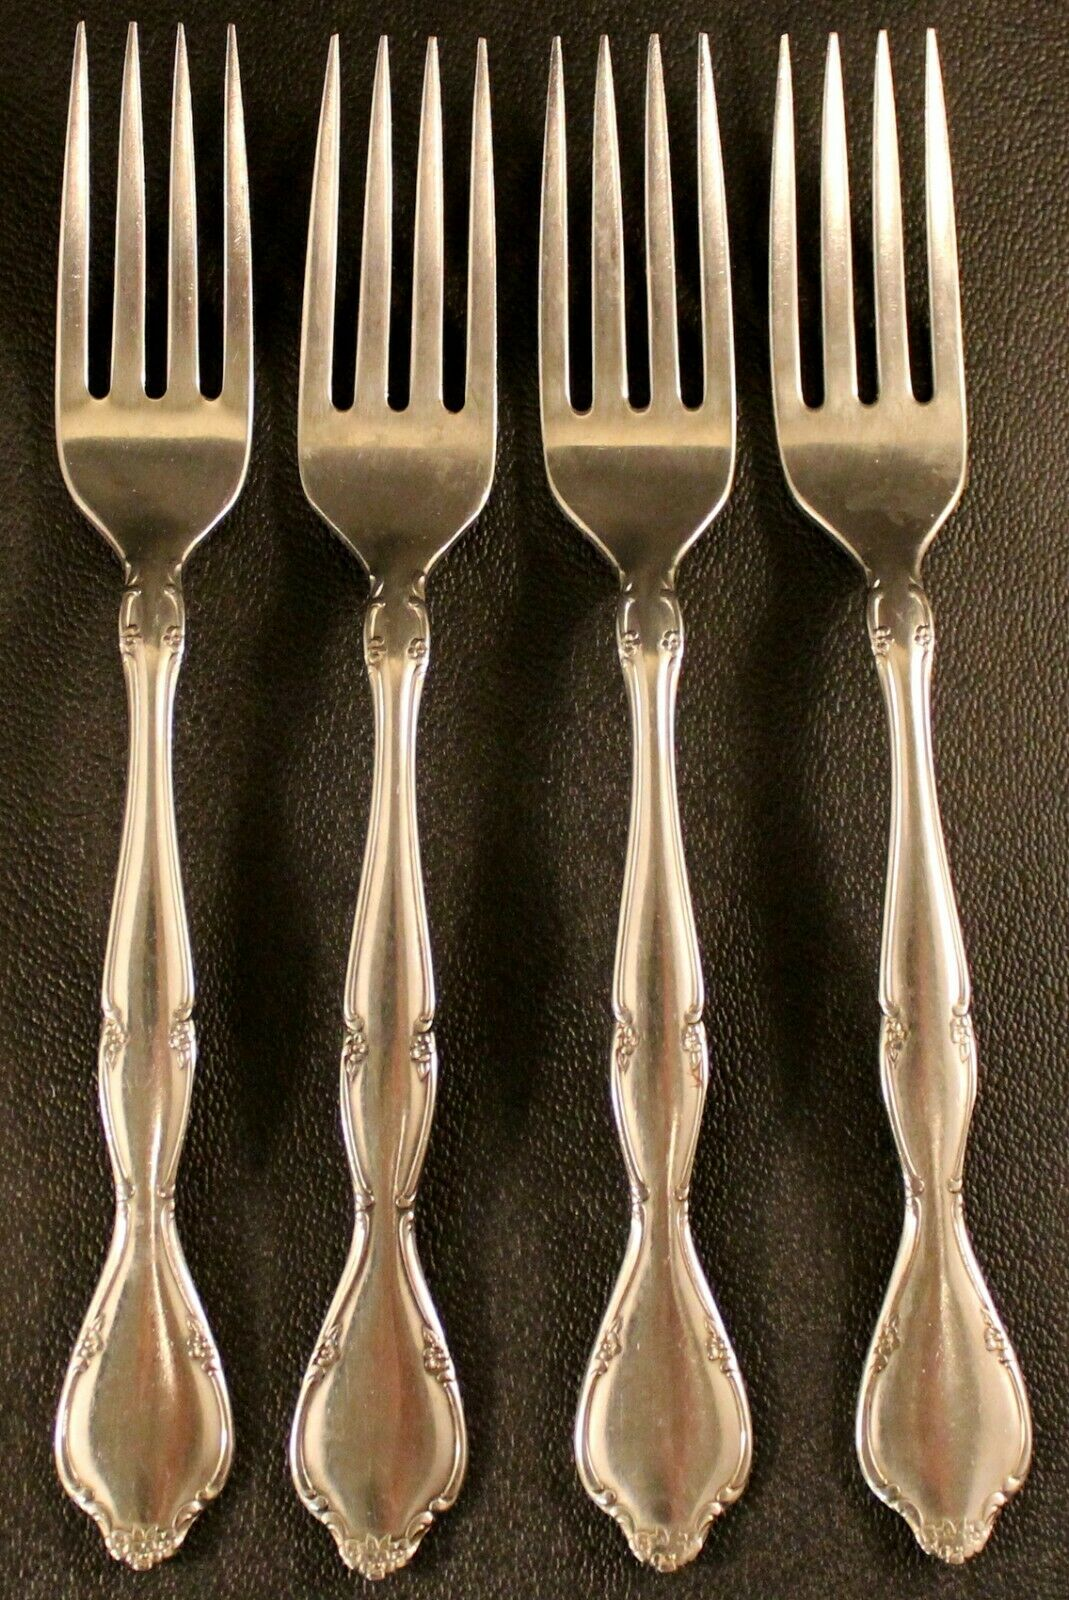 Lot de 4  Oneida S.S.S. LAKEWOOD TUXEDO dinner forks inoxydable 7 1 4